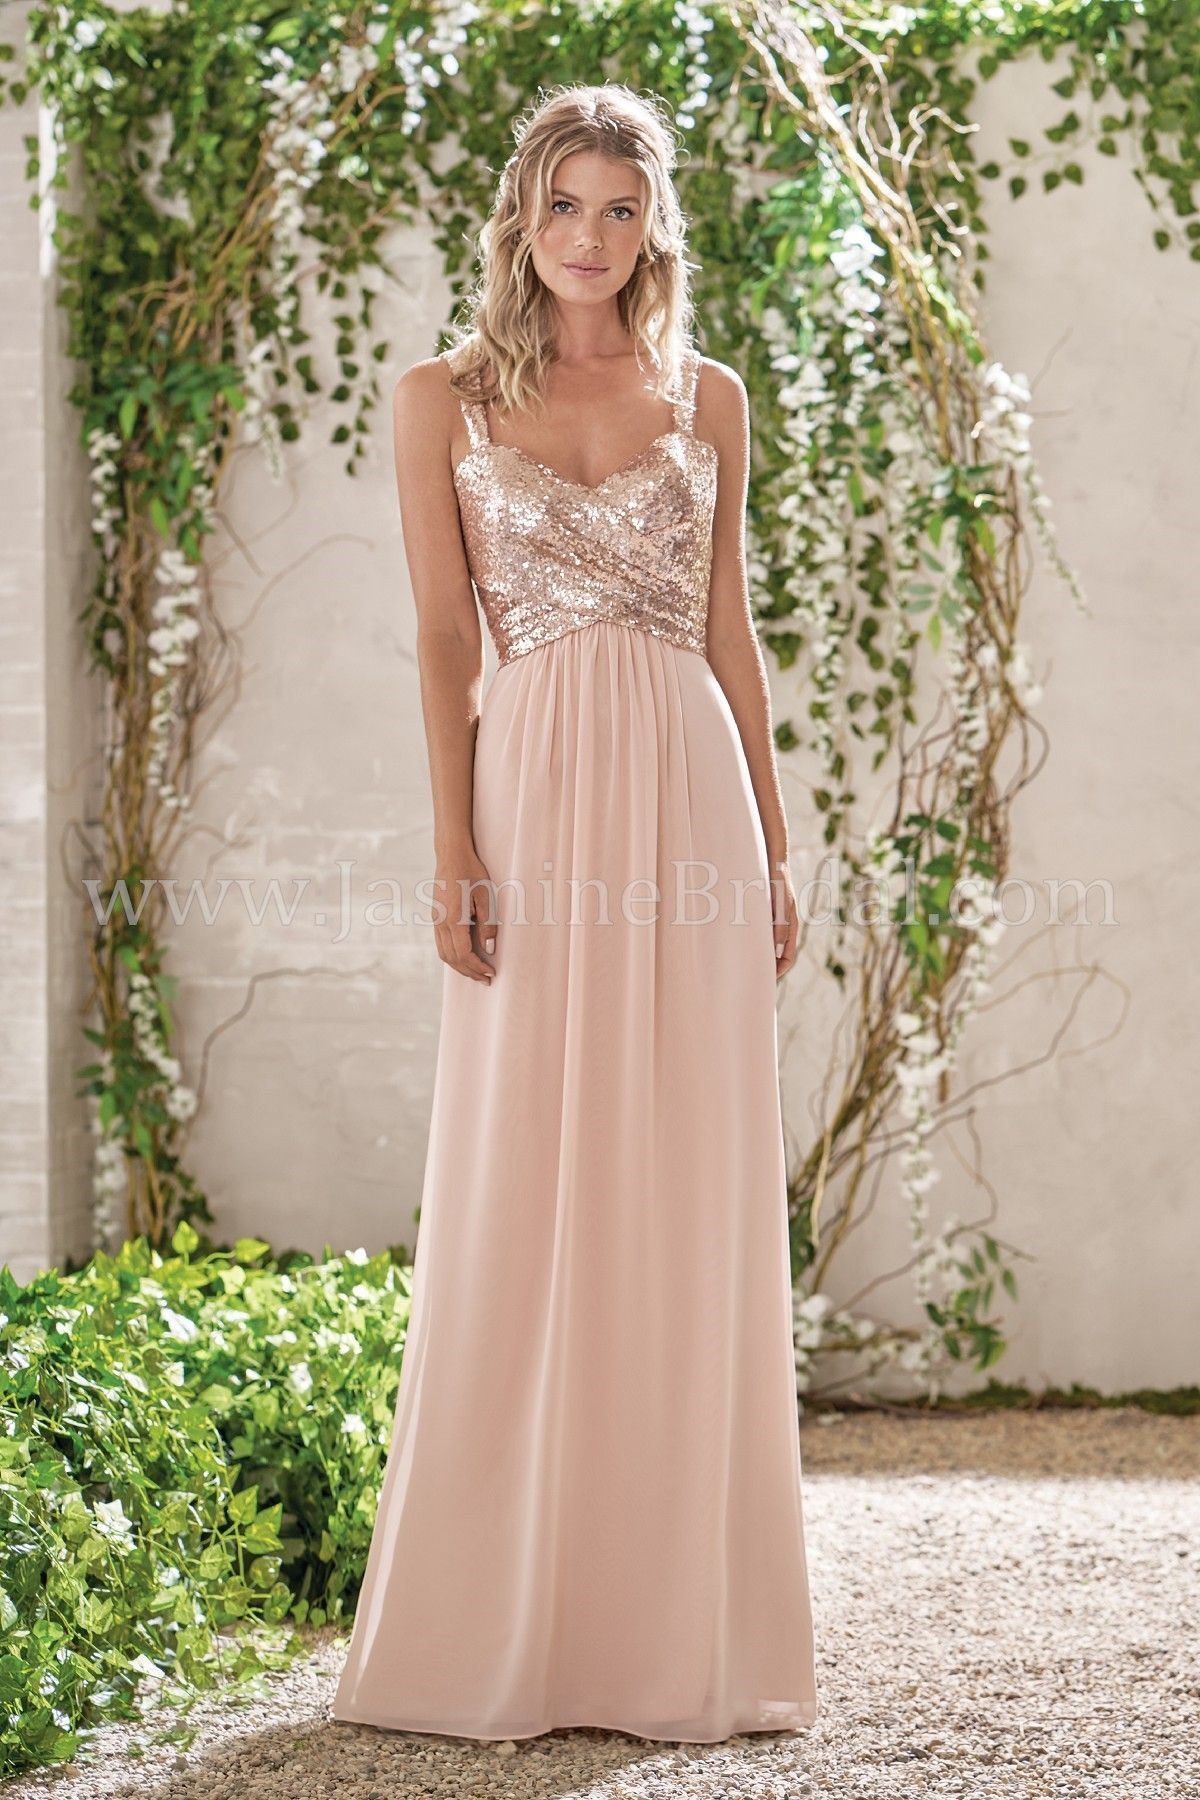 Jasmine bridal b2 style b193005 in sequin iipoly chiffon color jasmine bridal b2 style b193005 in sequin iipoly chiffon color rose gold ombrellifo Image collections